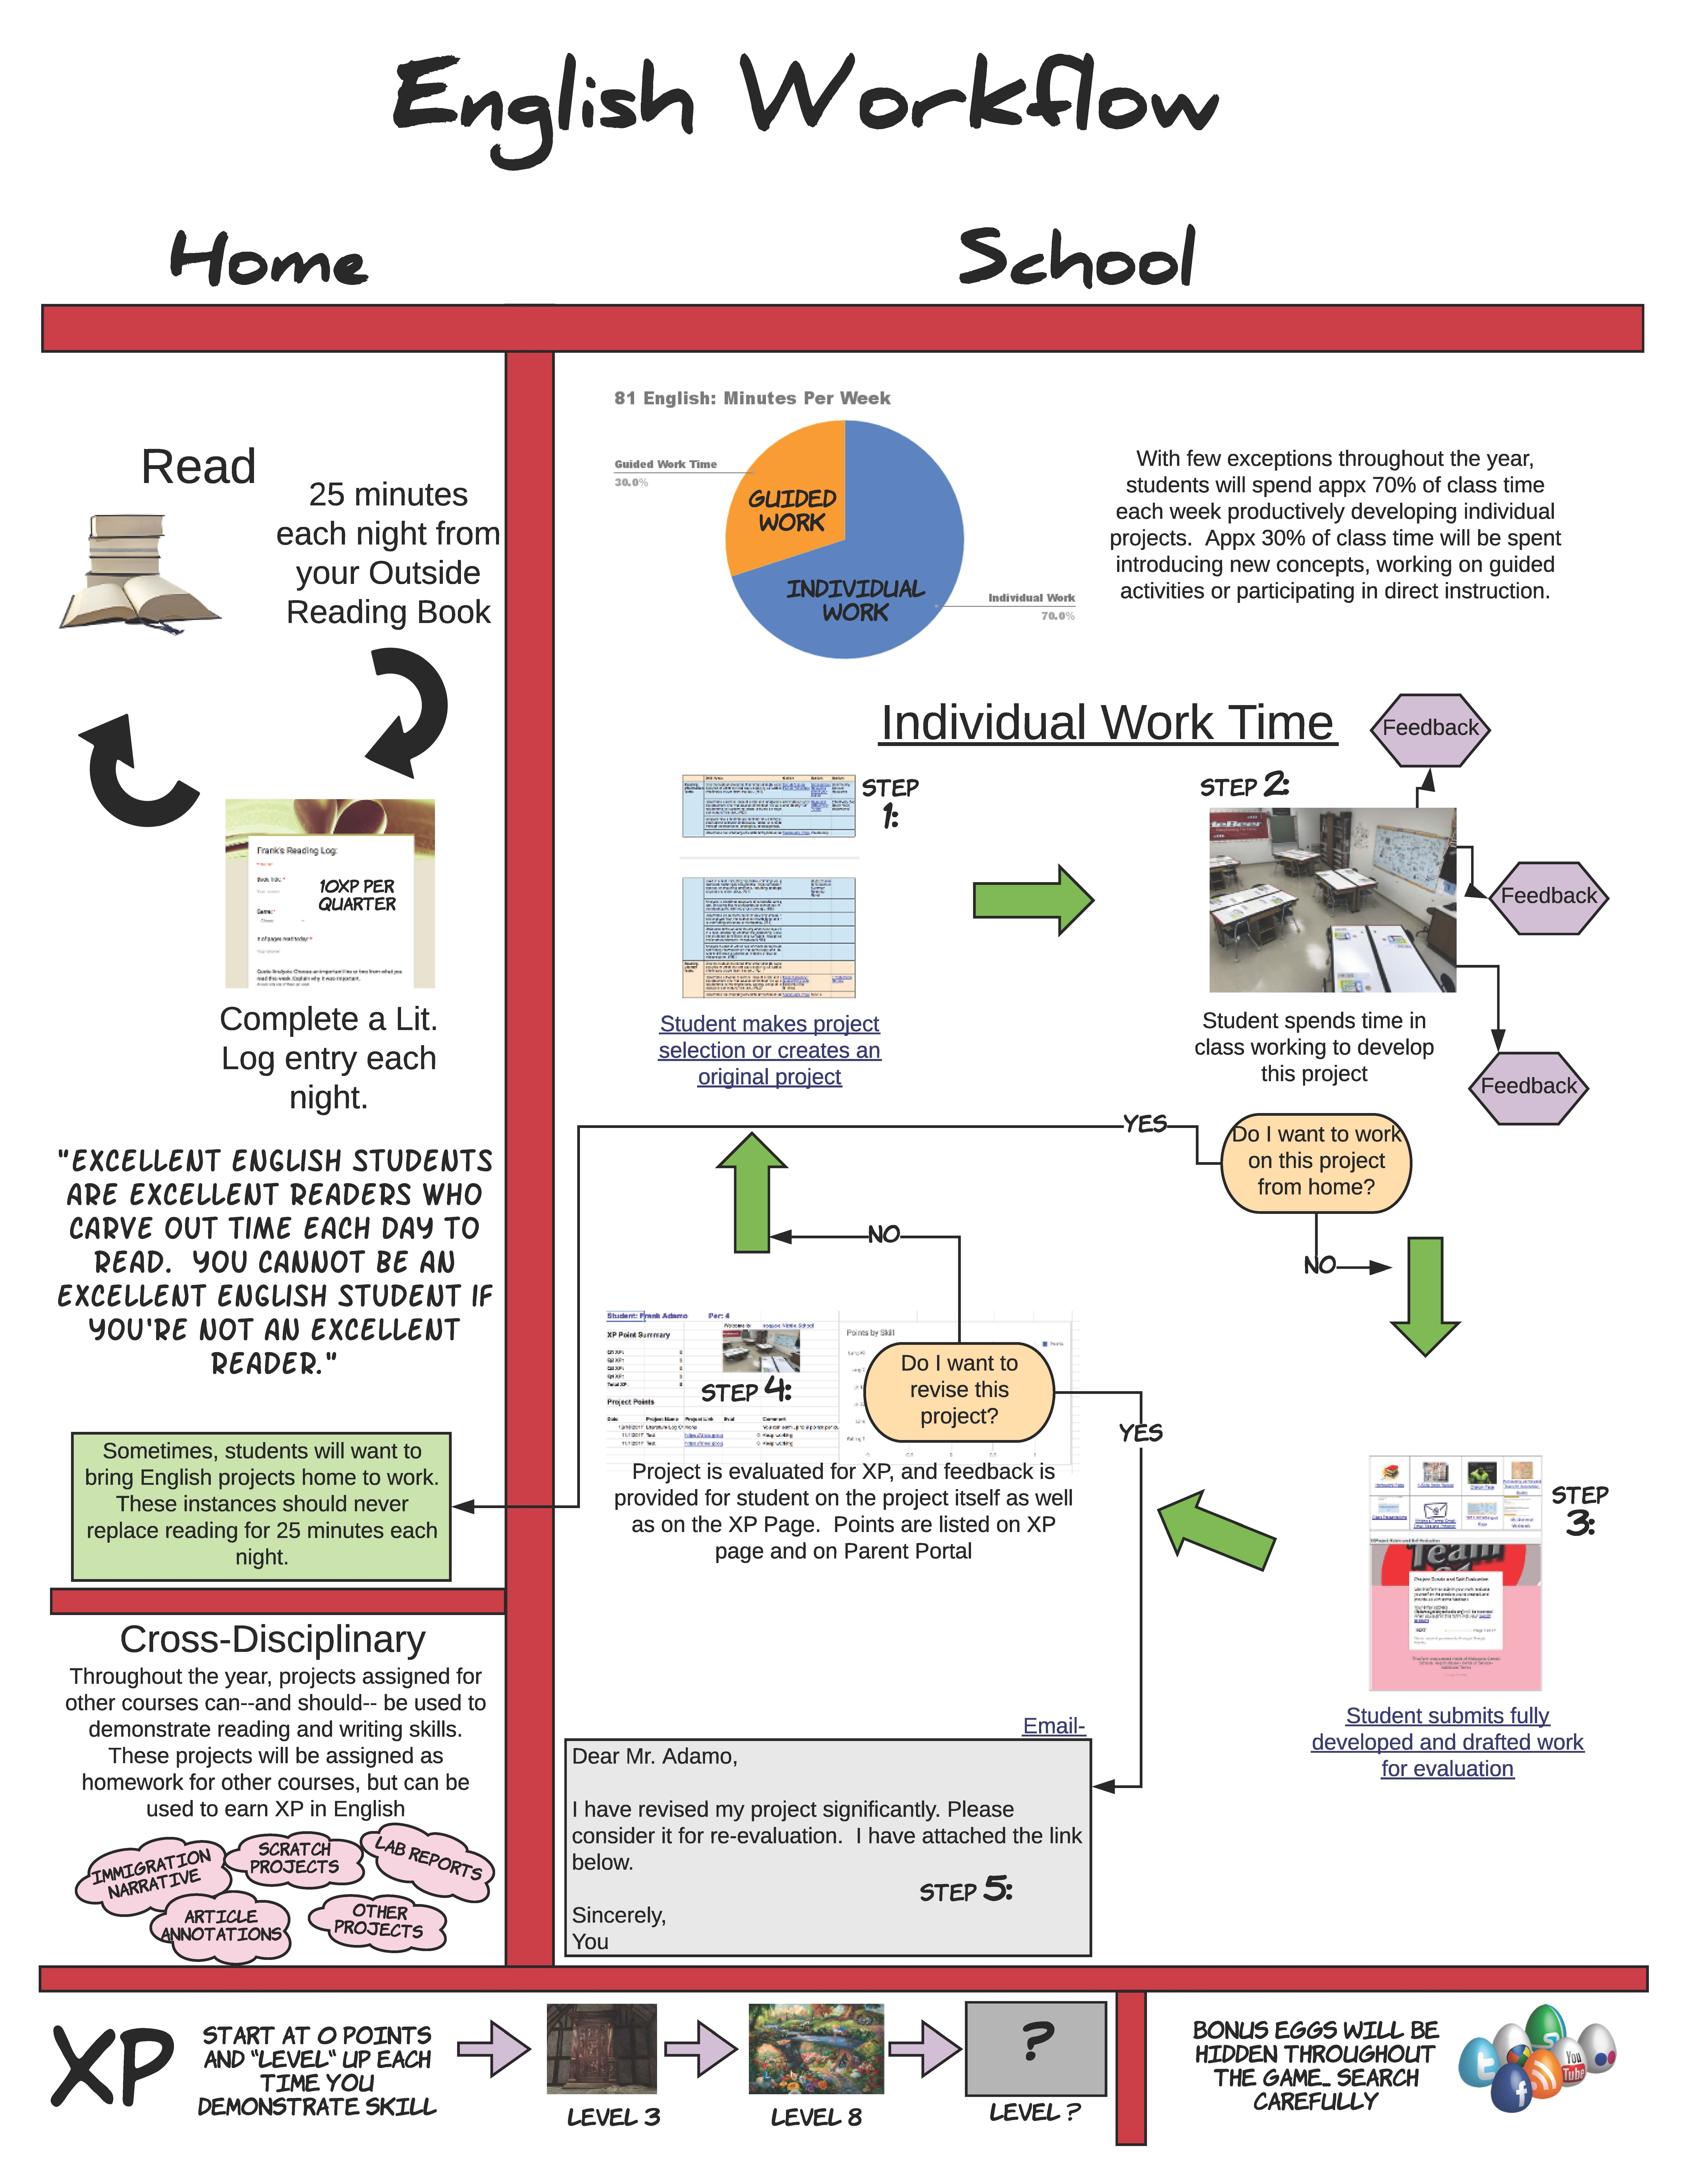 English Assignment Workflow